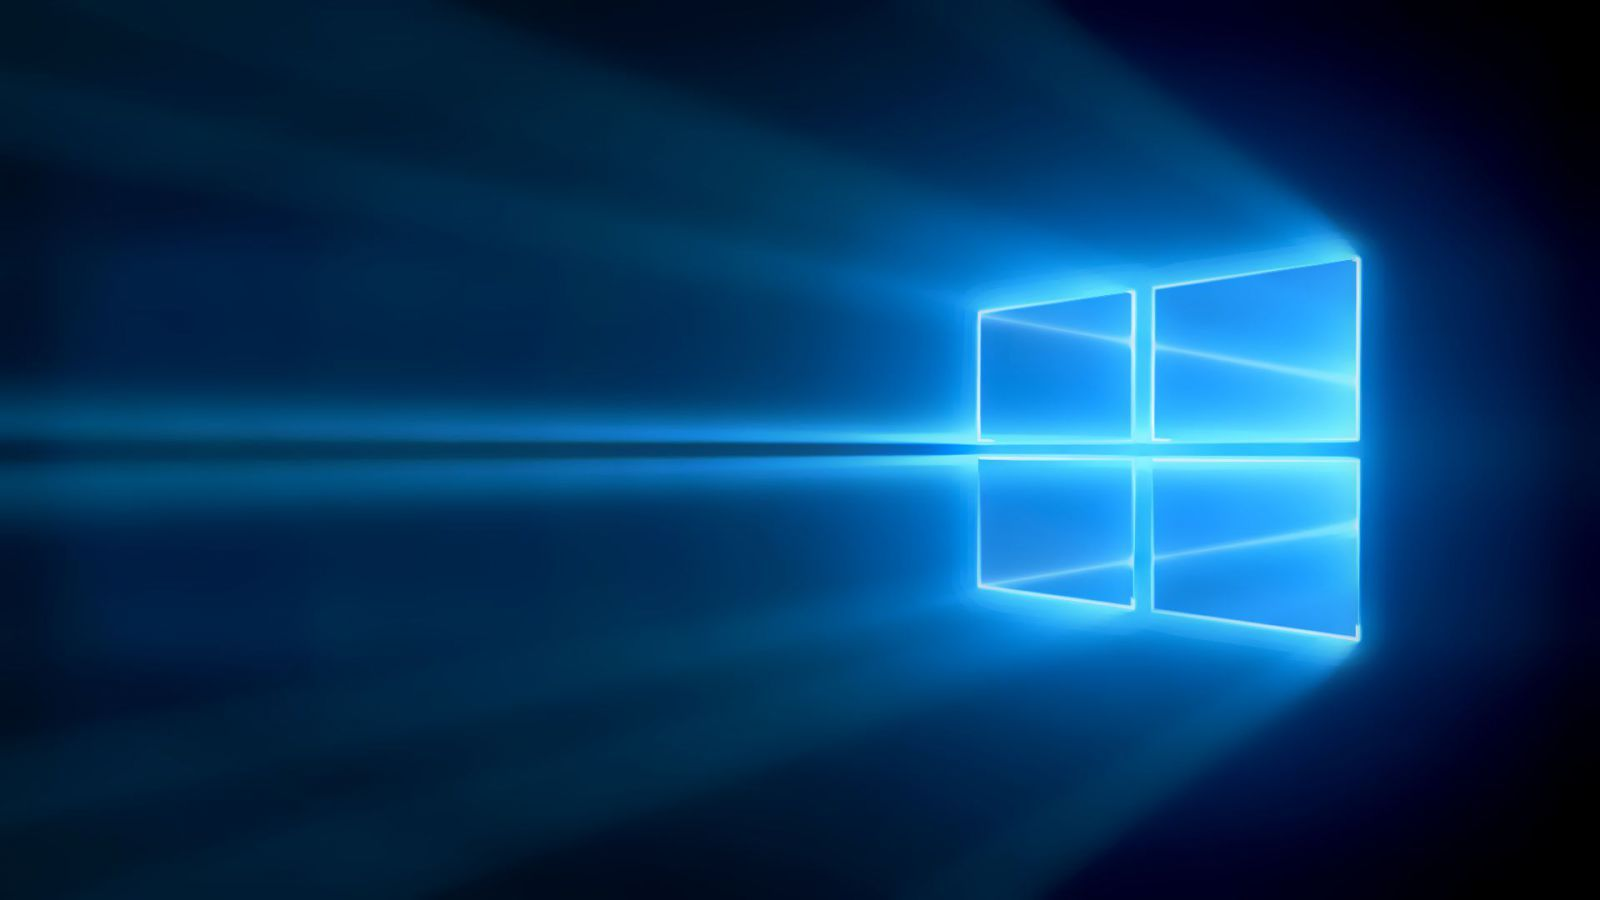 Windows 10 Wallpaper 4k Wallpapersafari Hinh Nền Nền Windows 10